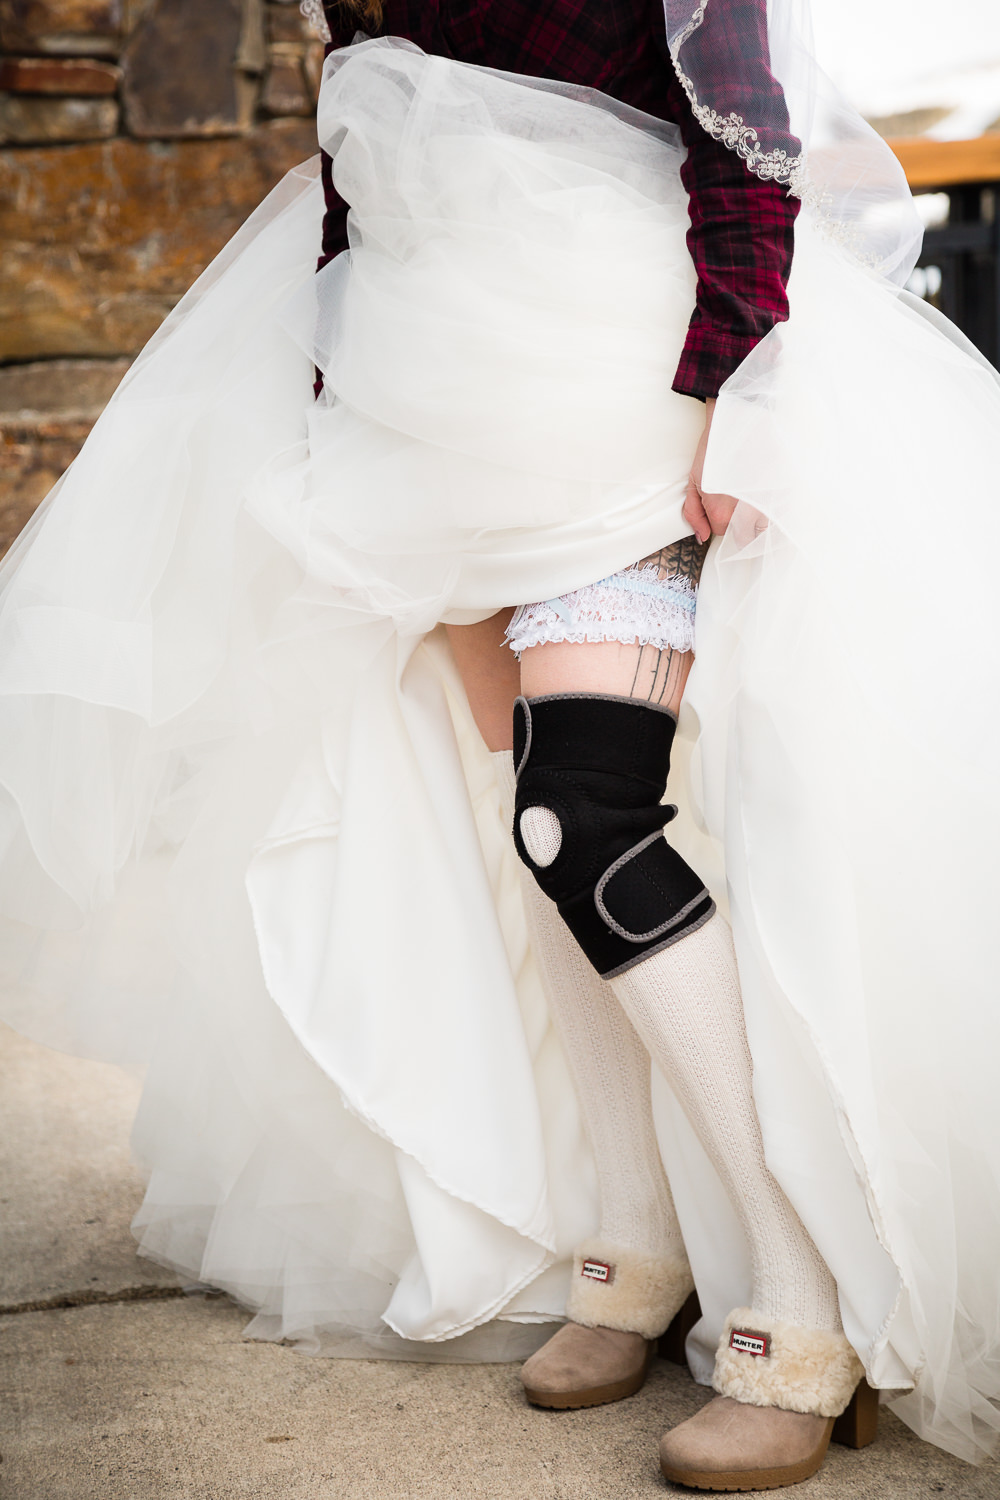 big-sky-montana-winter-wedding-breanna-reception-bride-leg-brace.jpg